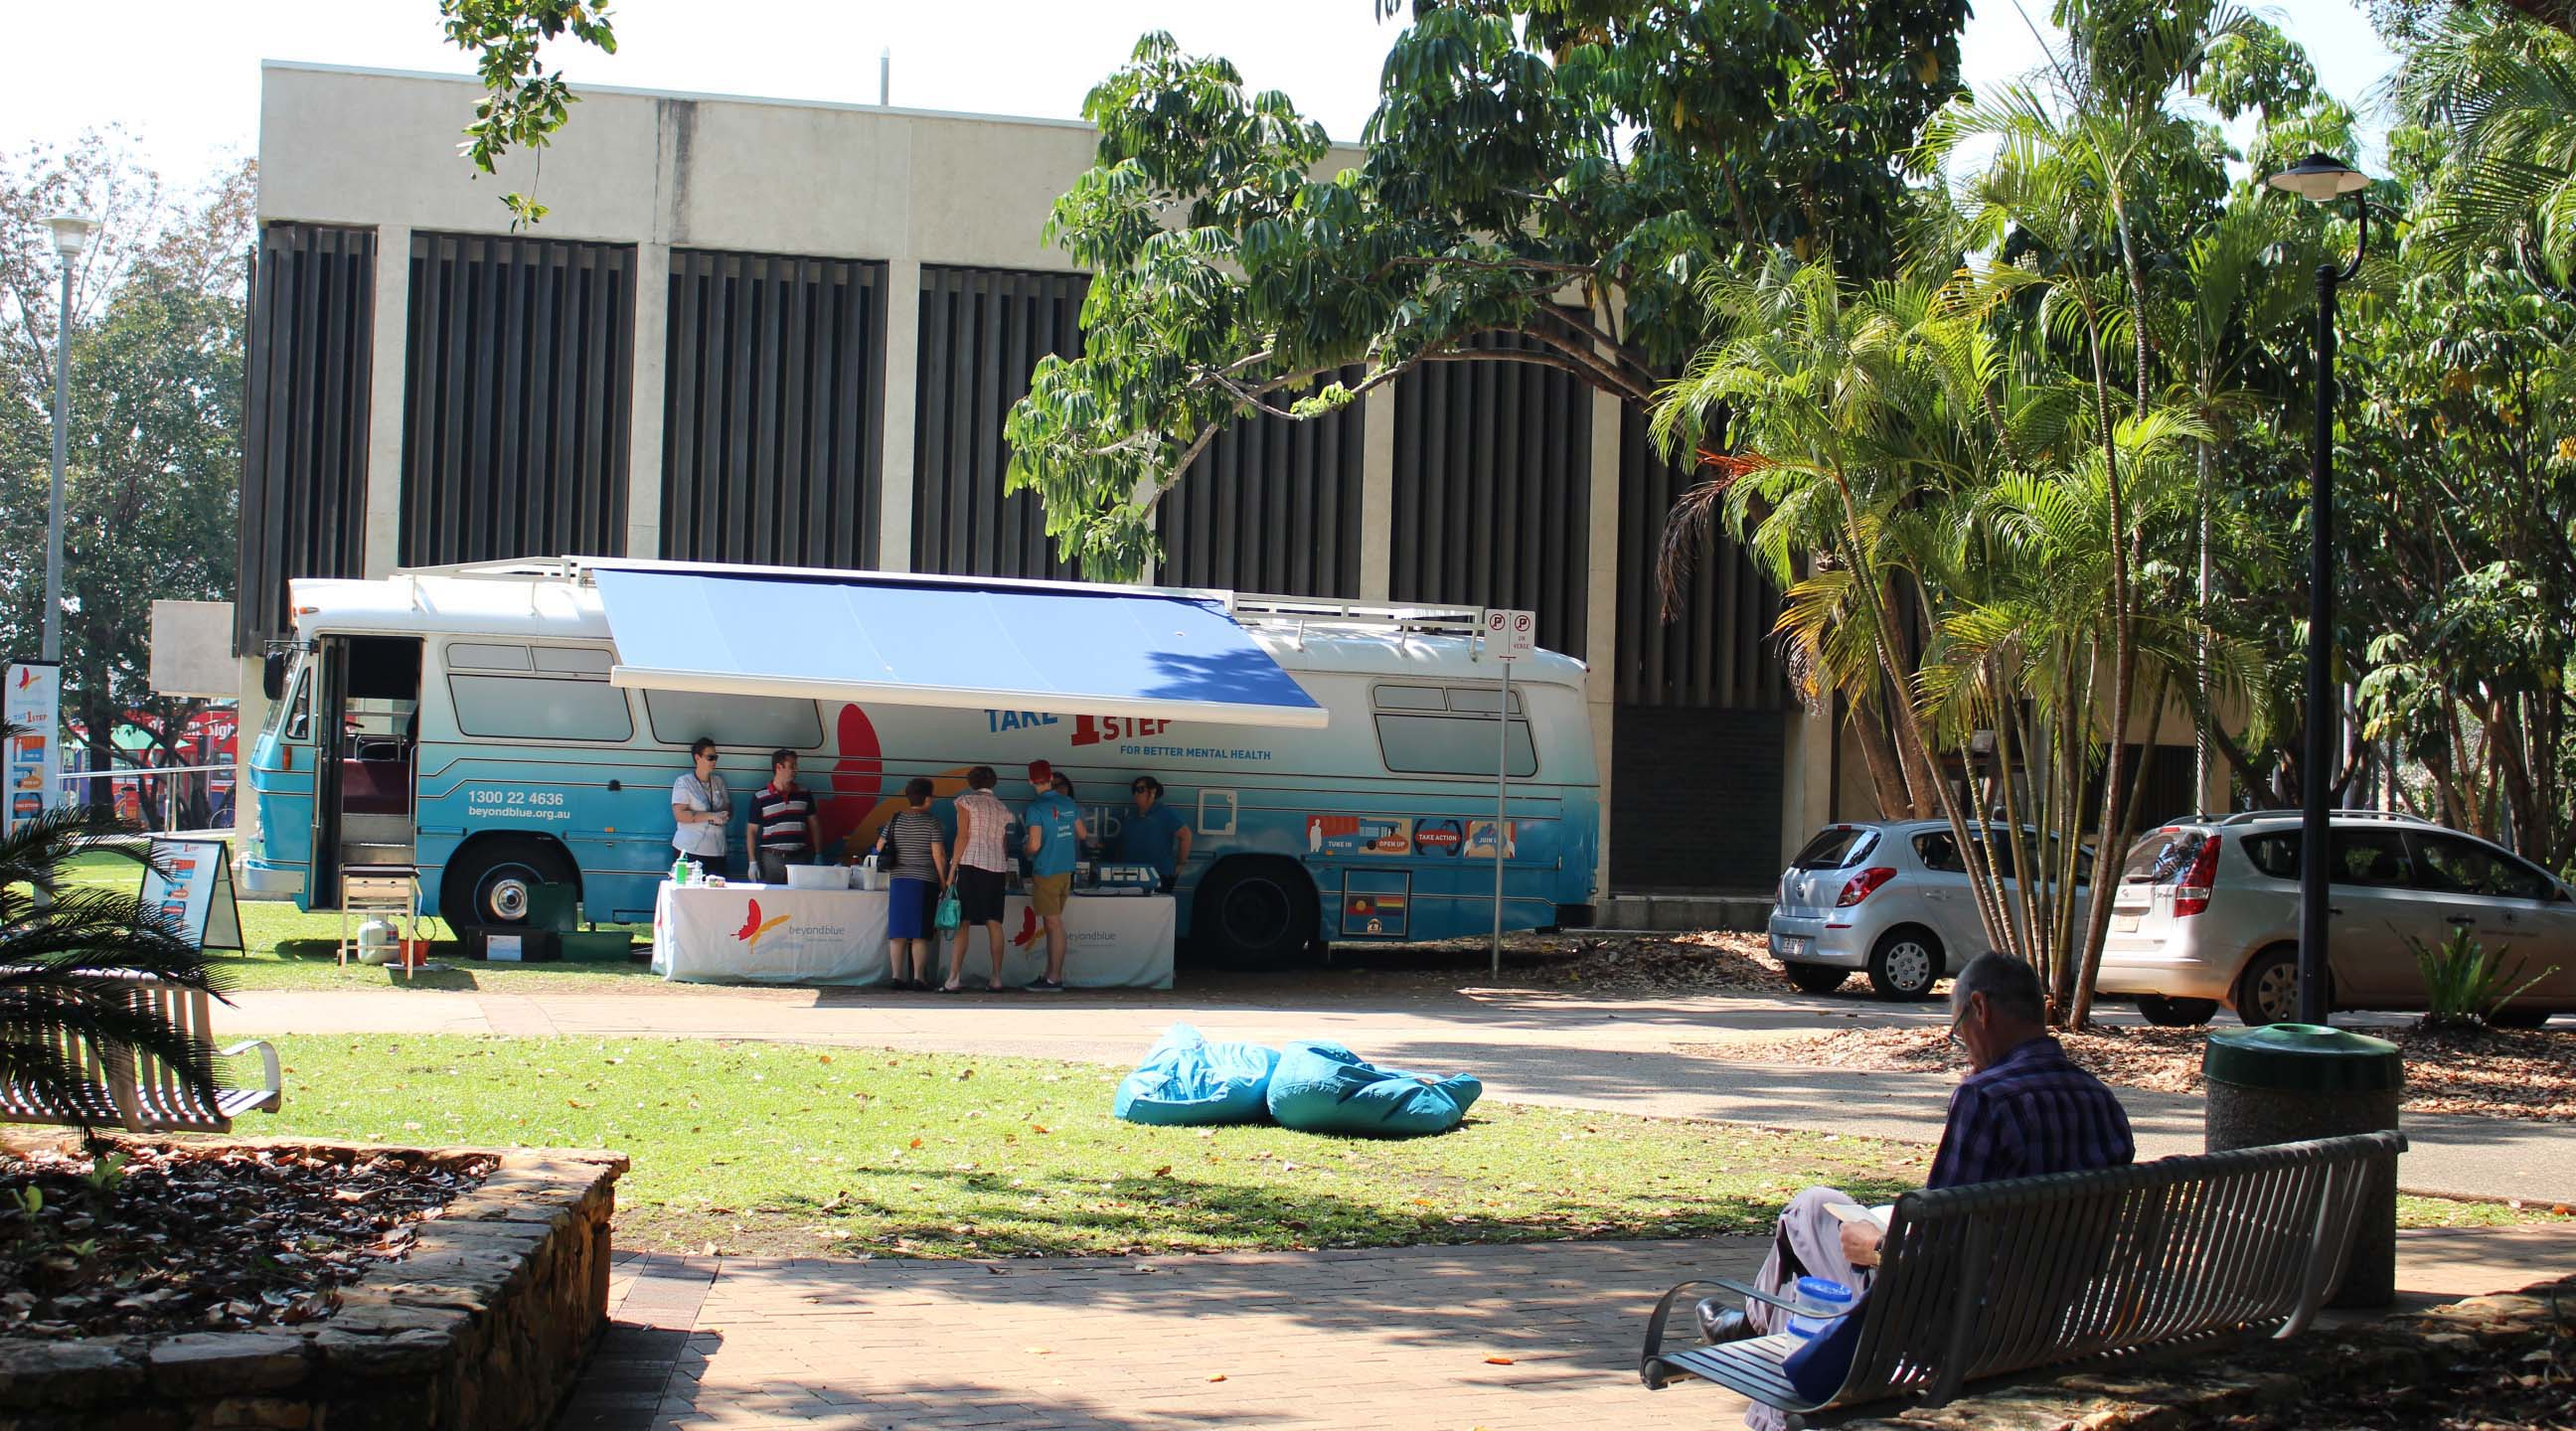 Bennett Park was one of the first stops in Darwin.